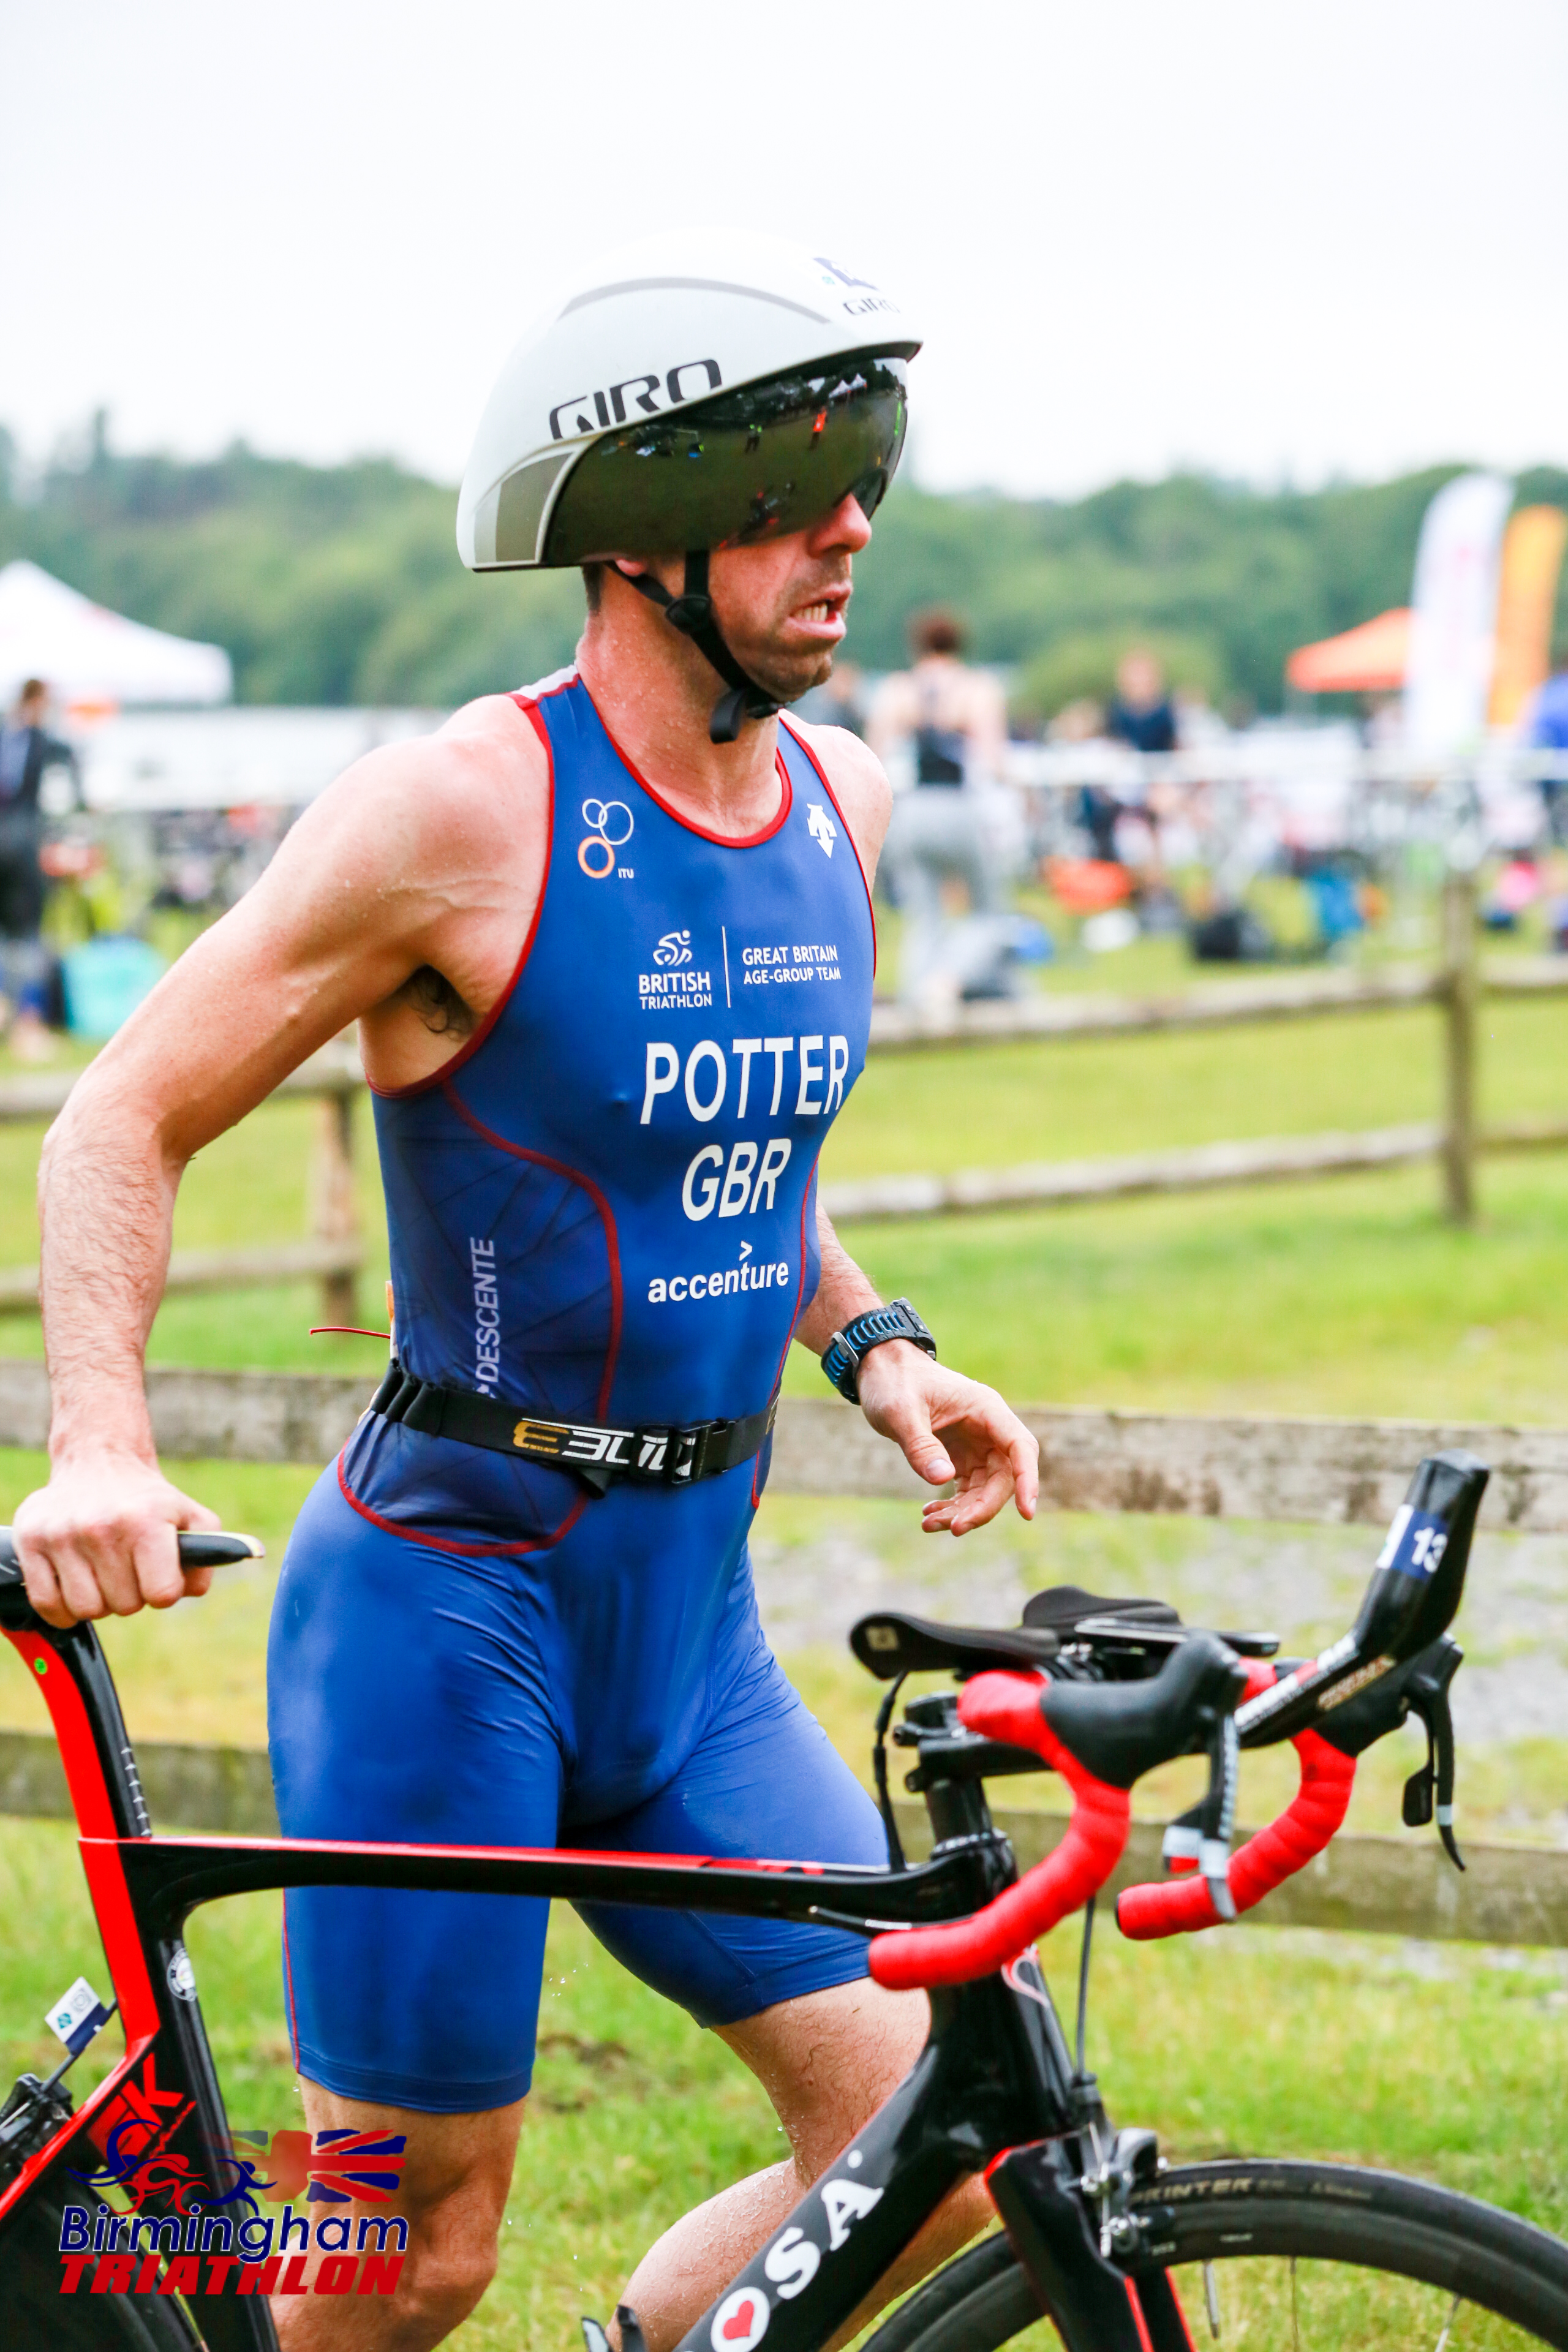 Birmingham_Triathlon_2019-Transition-101